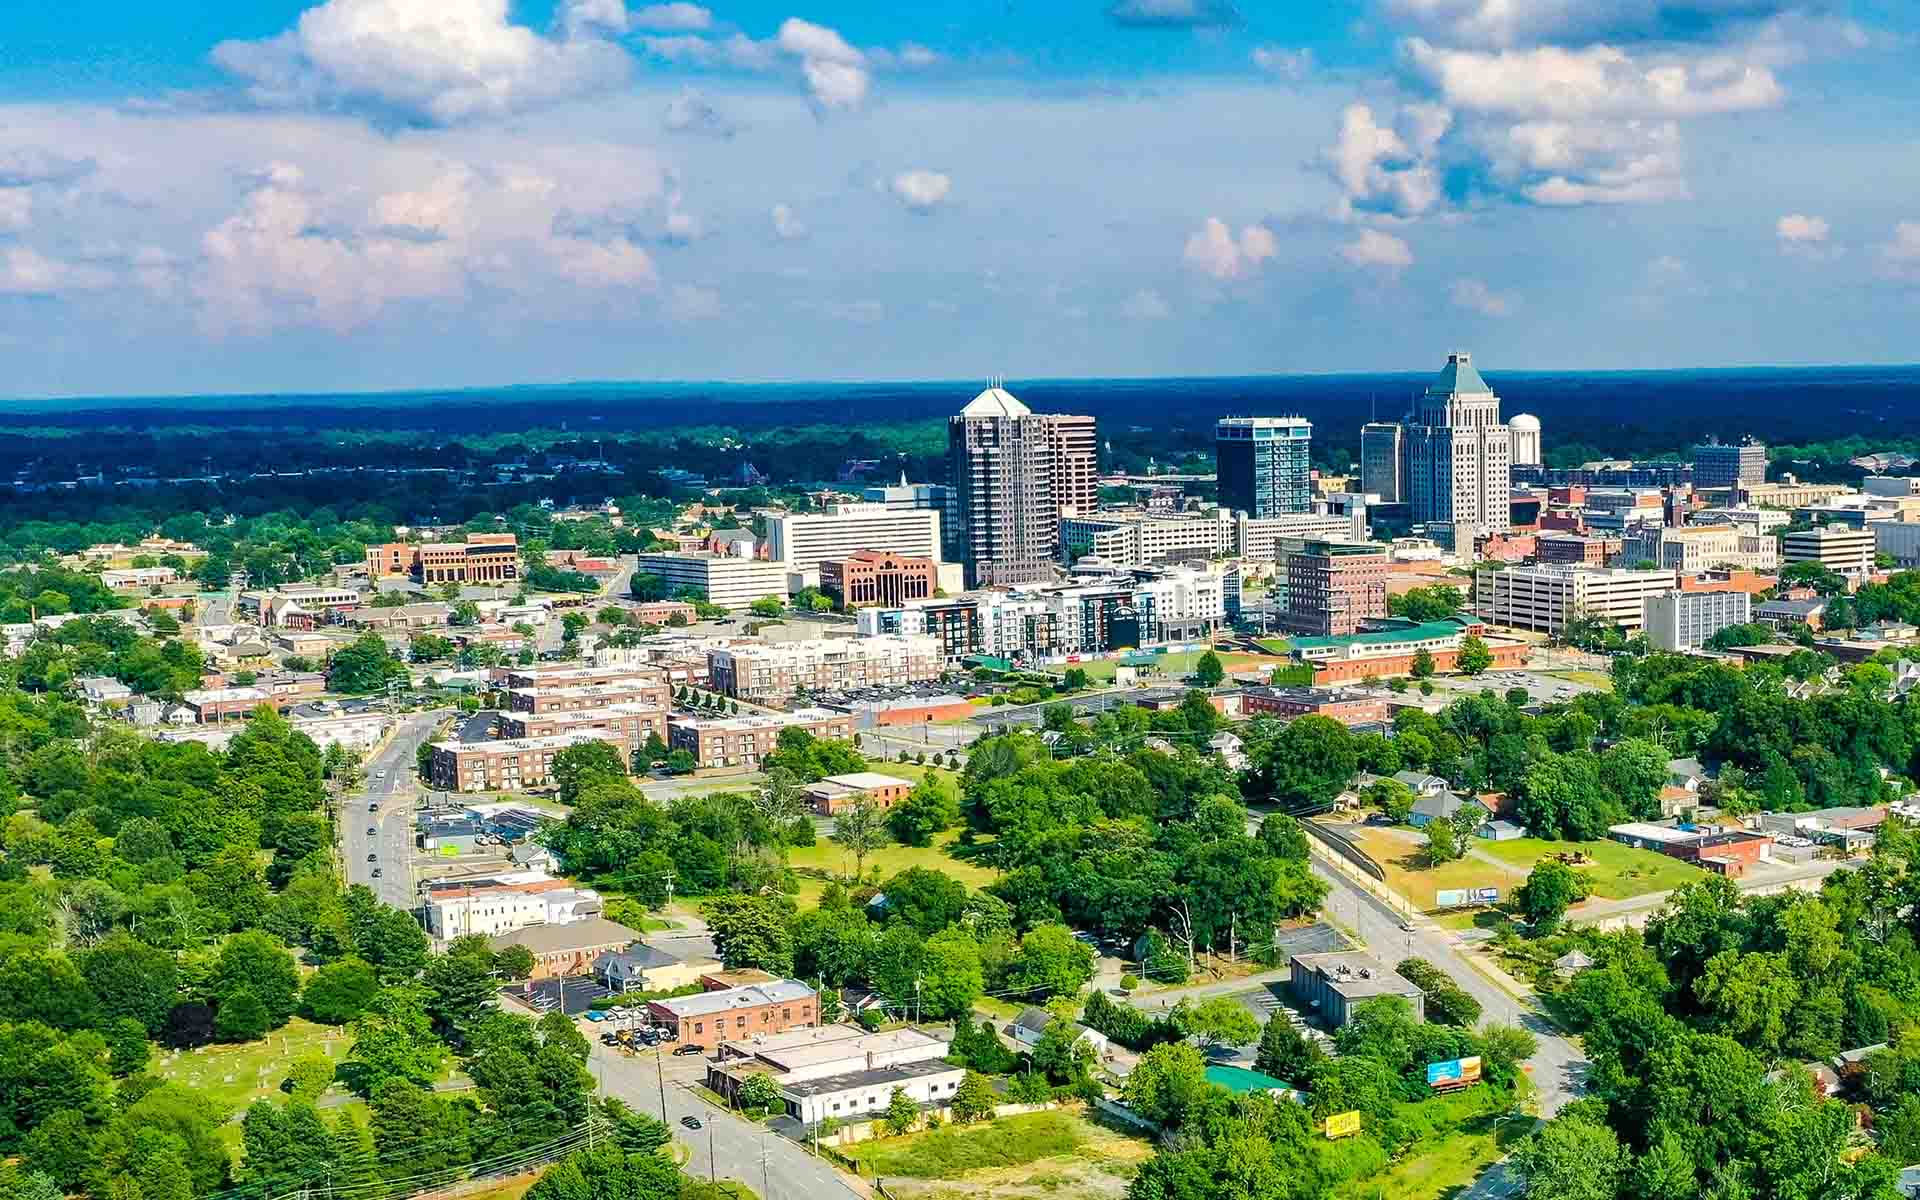 Contact - Aerial View of a City in North Carolina on a Beautiful Day